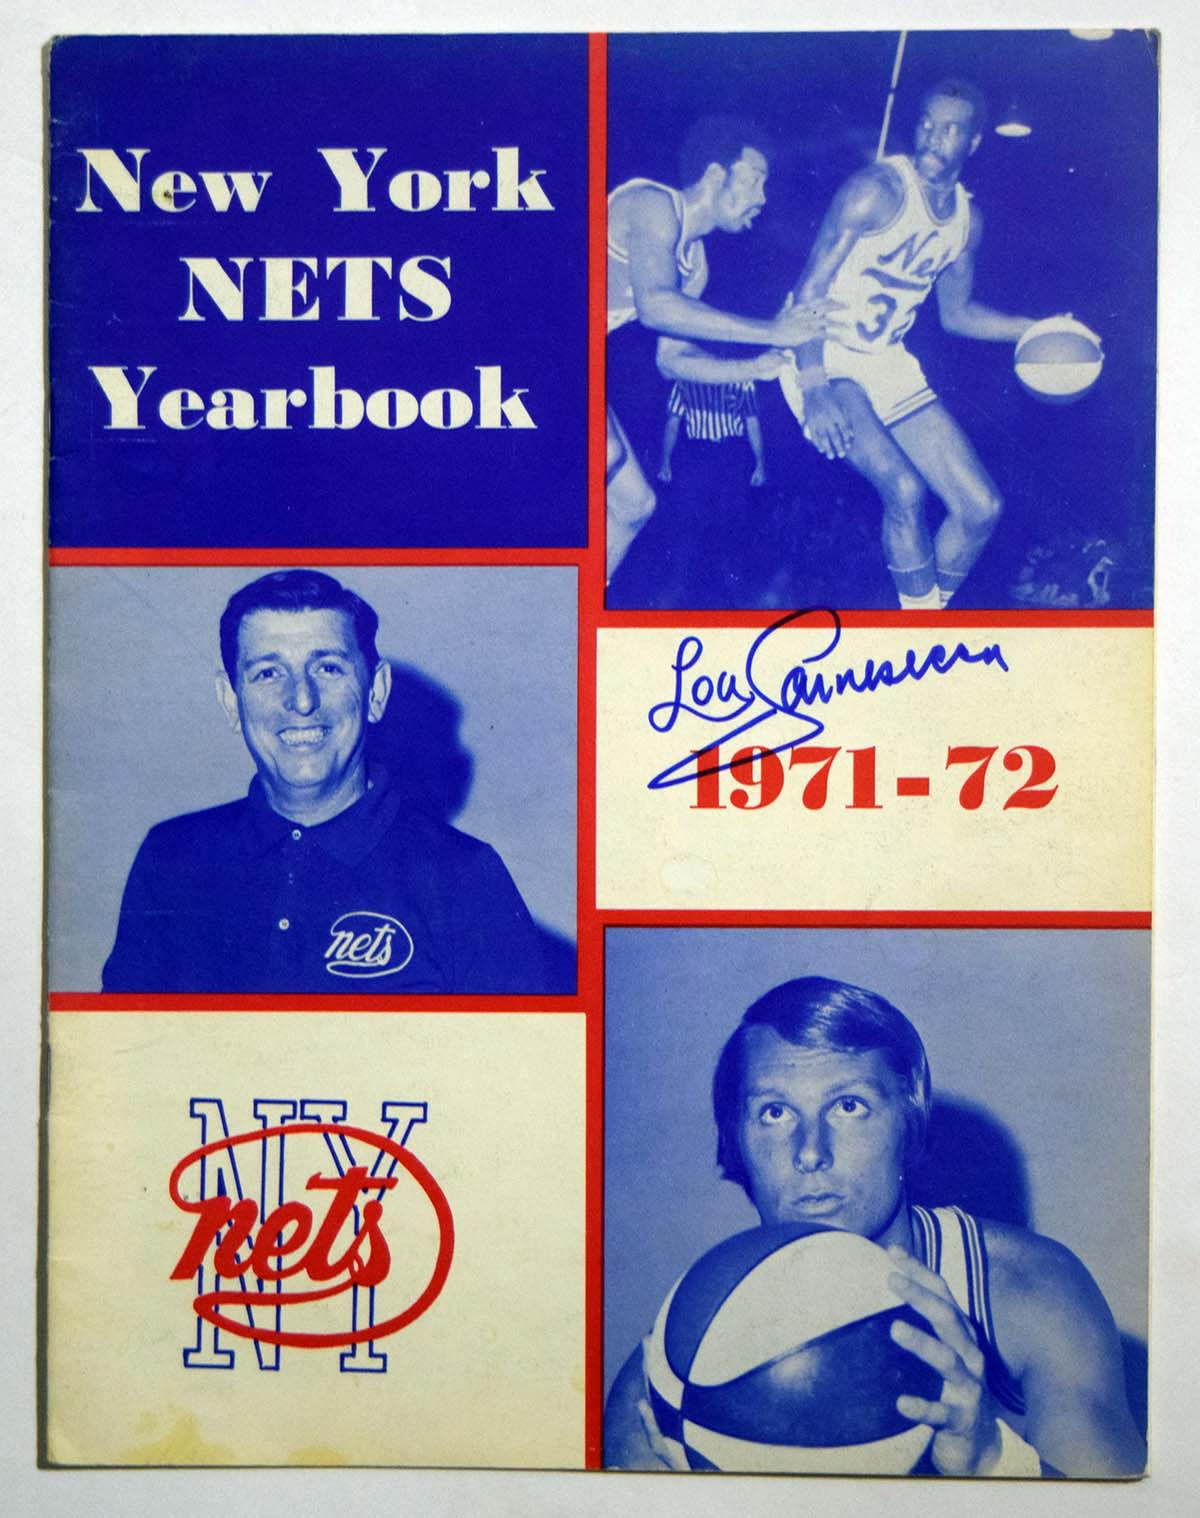 Lot #844 1971 Program  NY Nets Yearbook signed by Lou Carnisecca (JSA LOA) Cond: 9